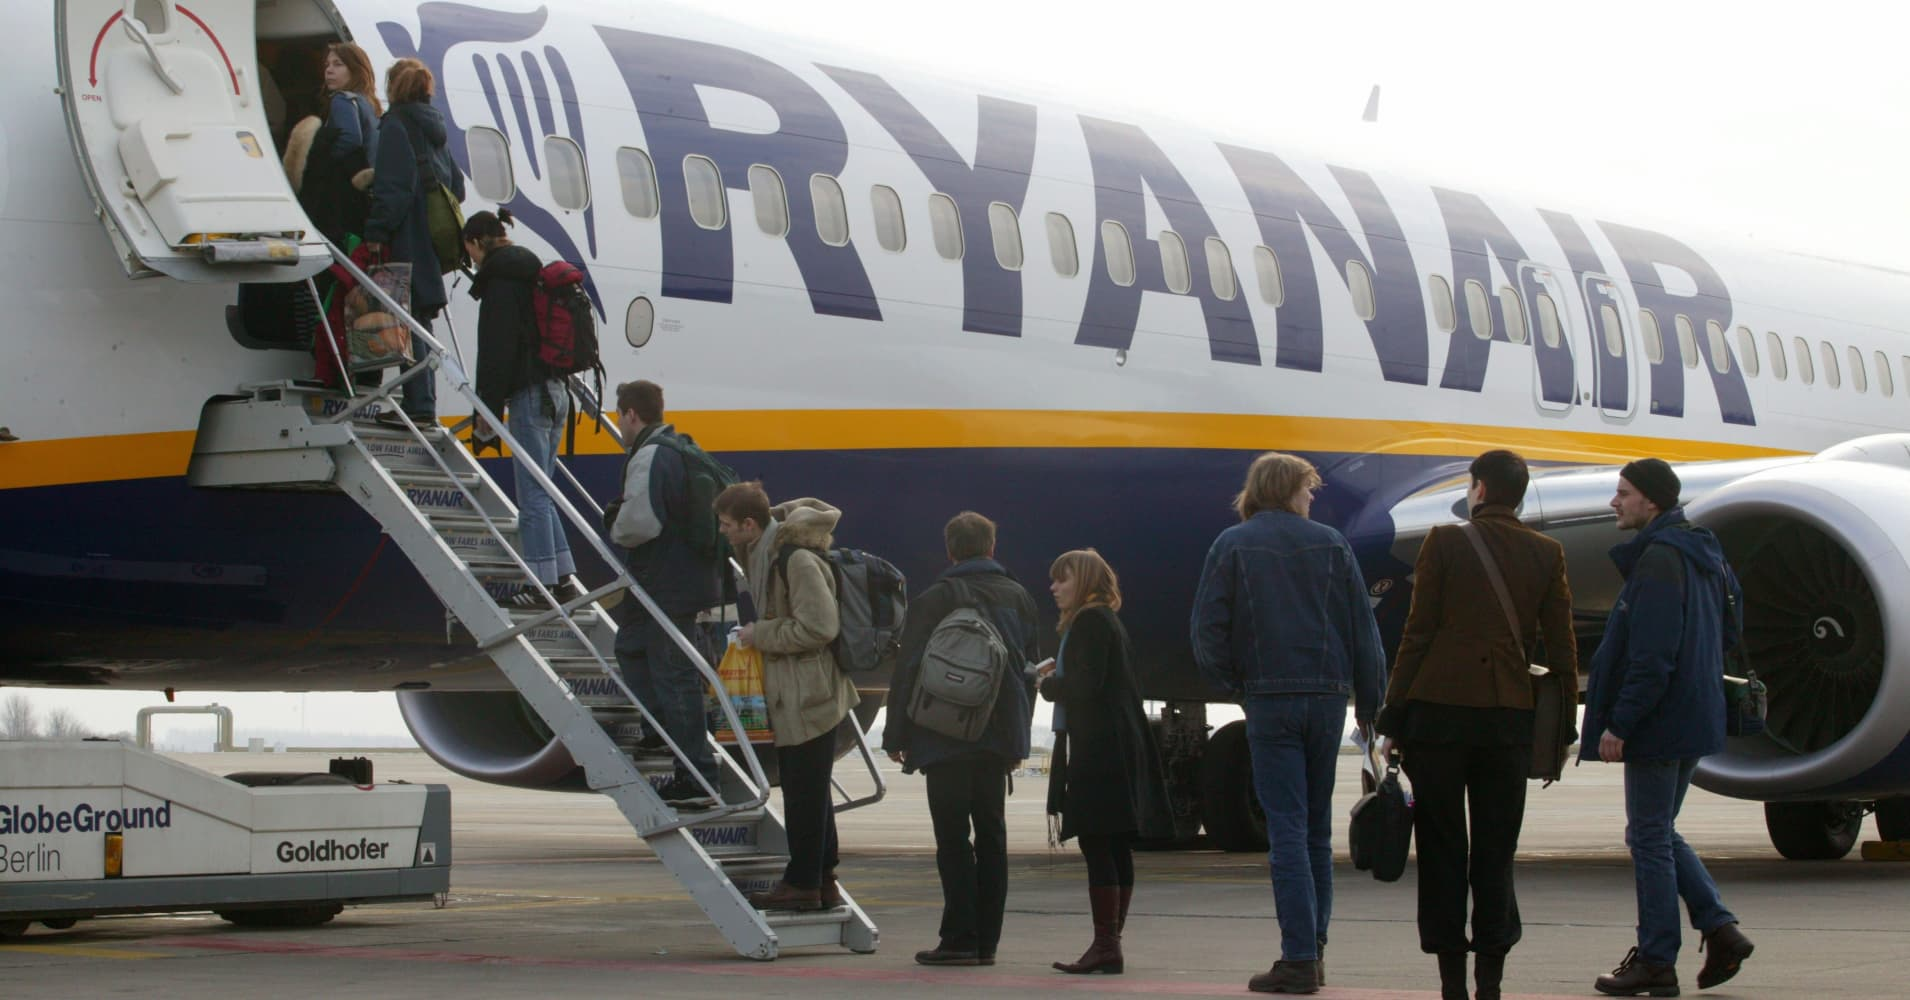 Ryanair CEO says some airlines will not 'survive' the winter due to elevated oil prices